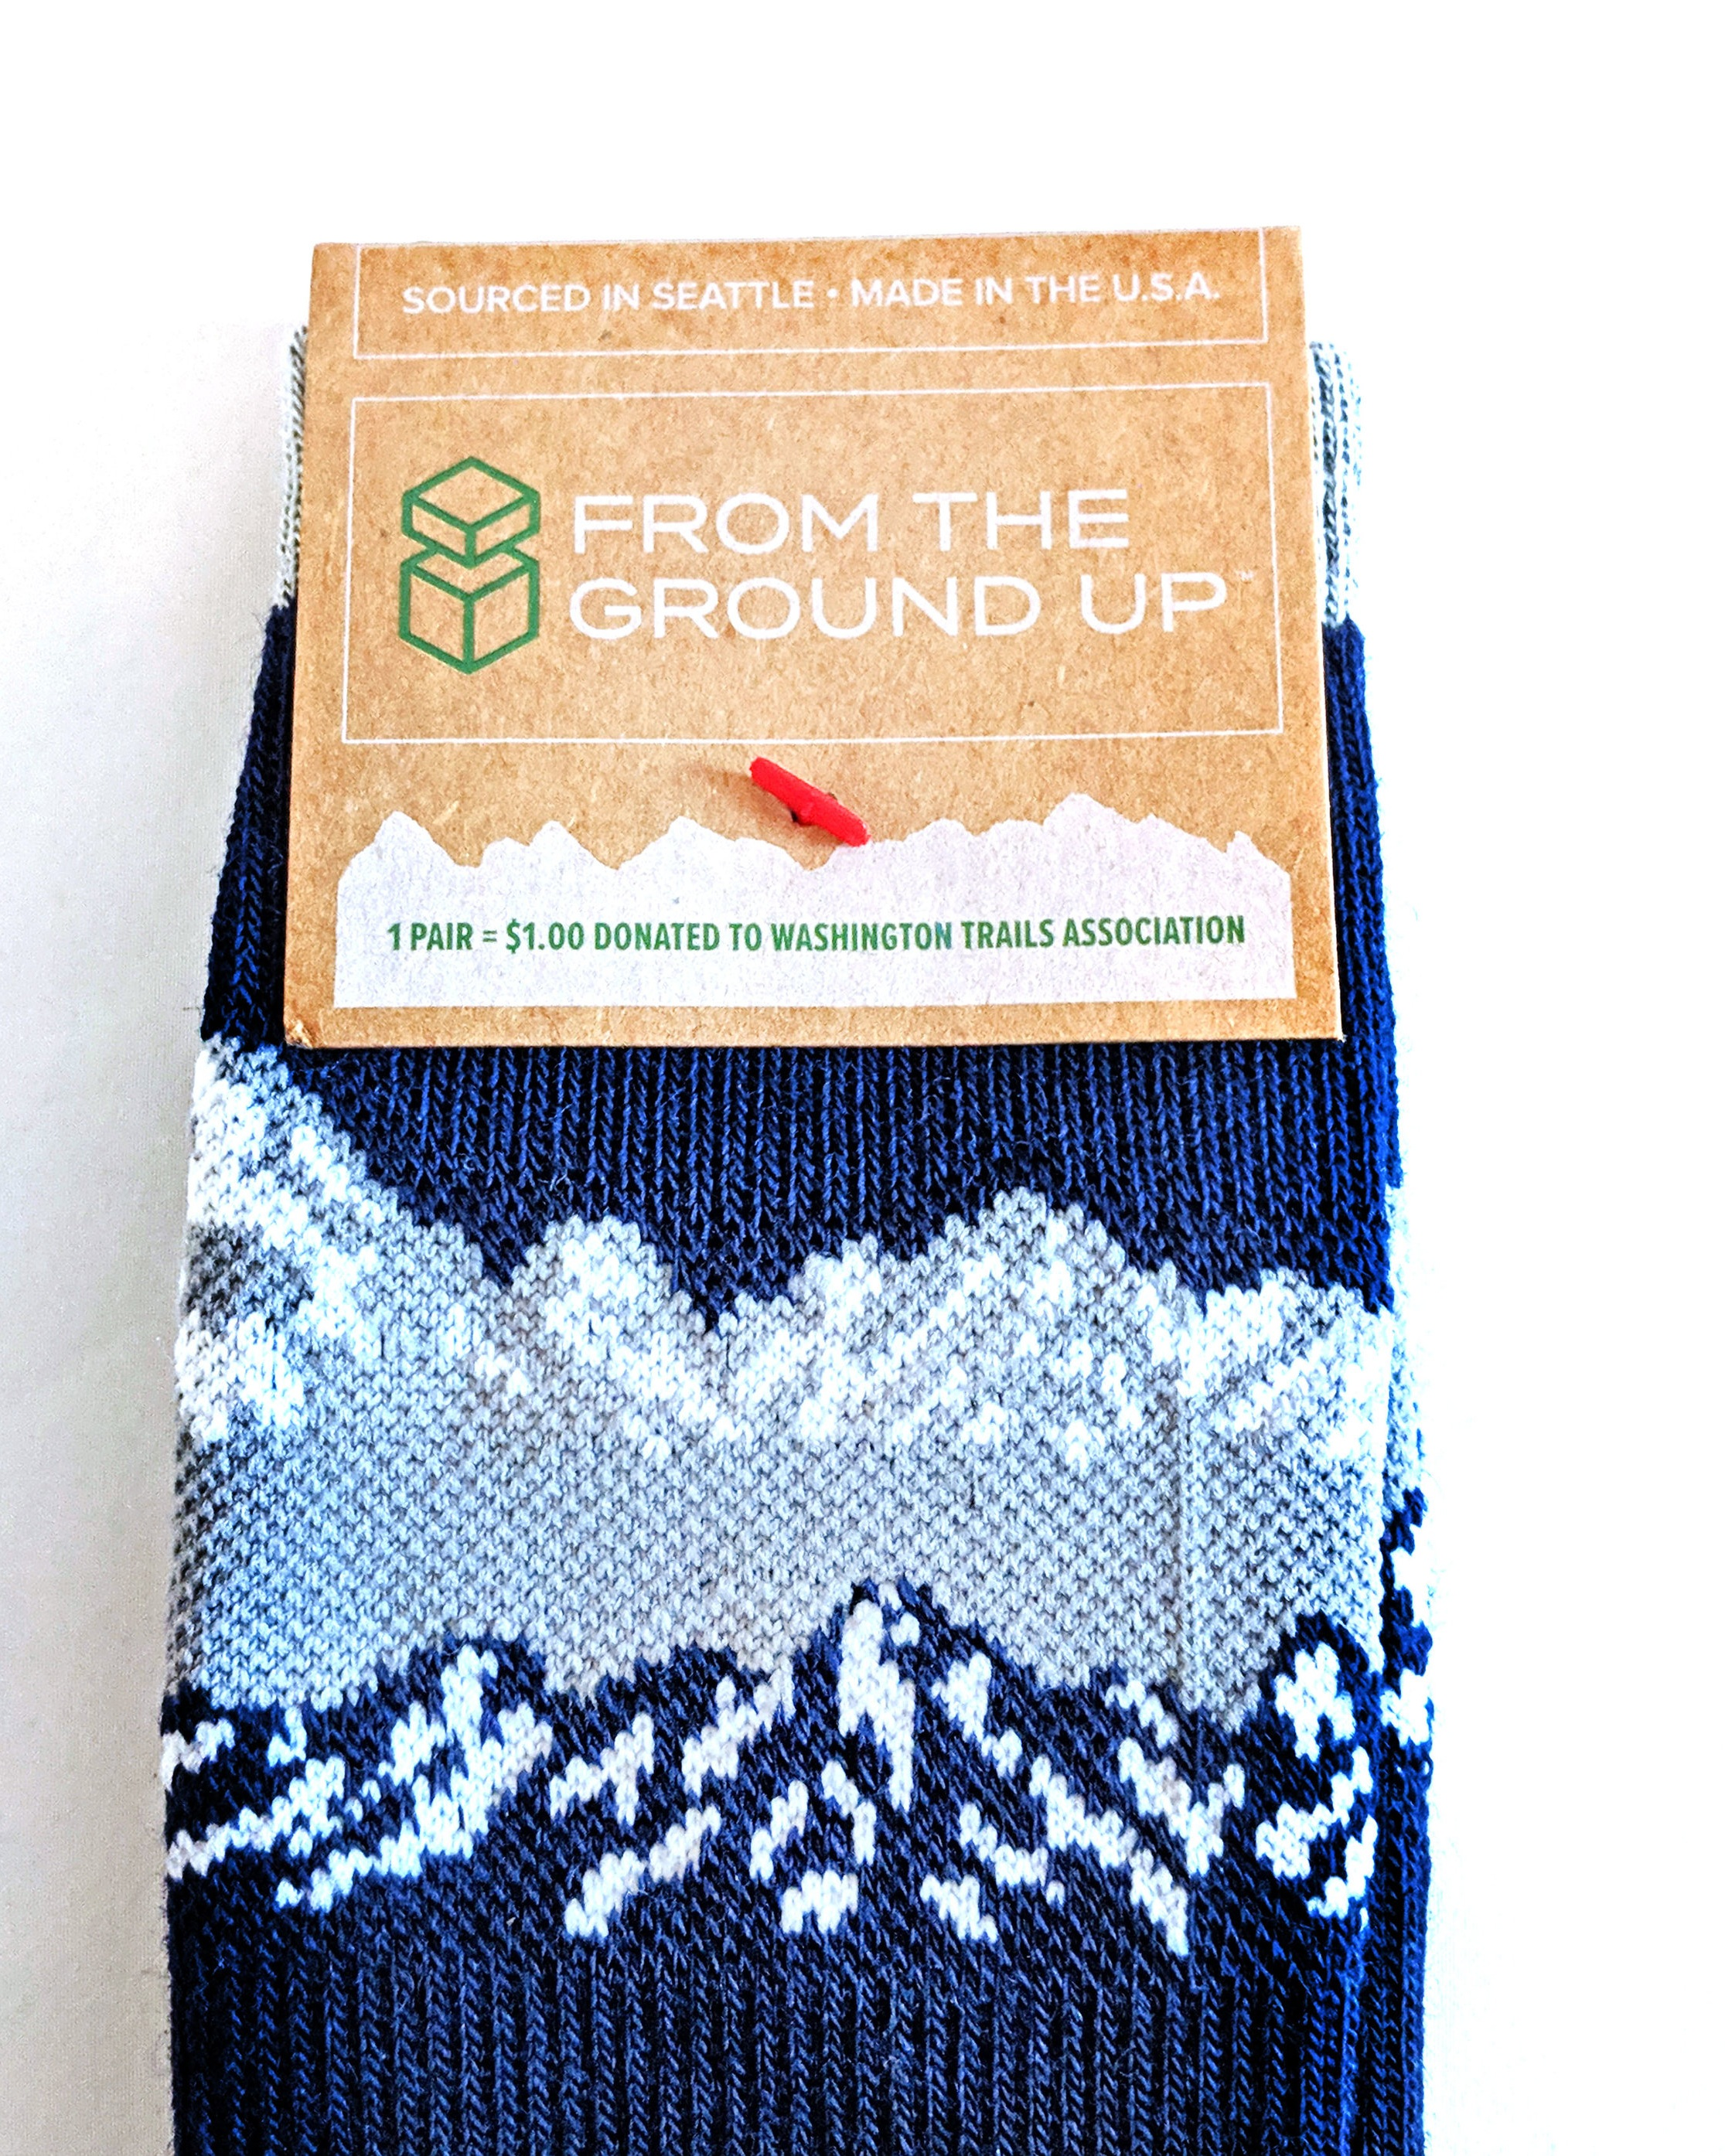 A close-up on packaging; for each pair sold, a donation is made to Washington Trails Association.